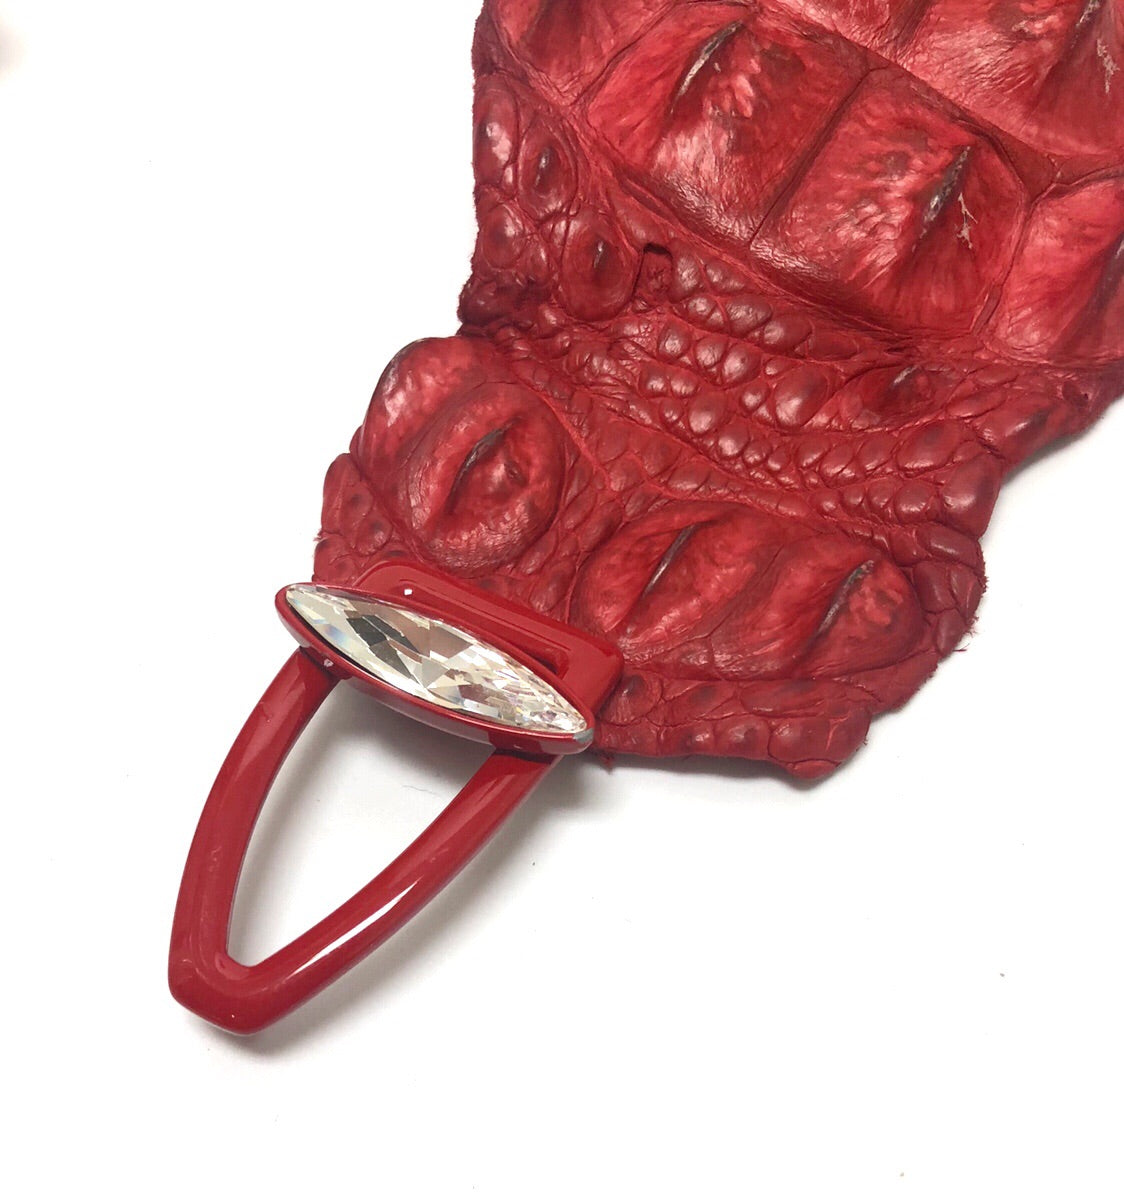 Rhinestone Buckle Red Alligator Belt